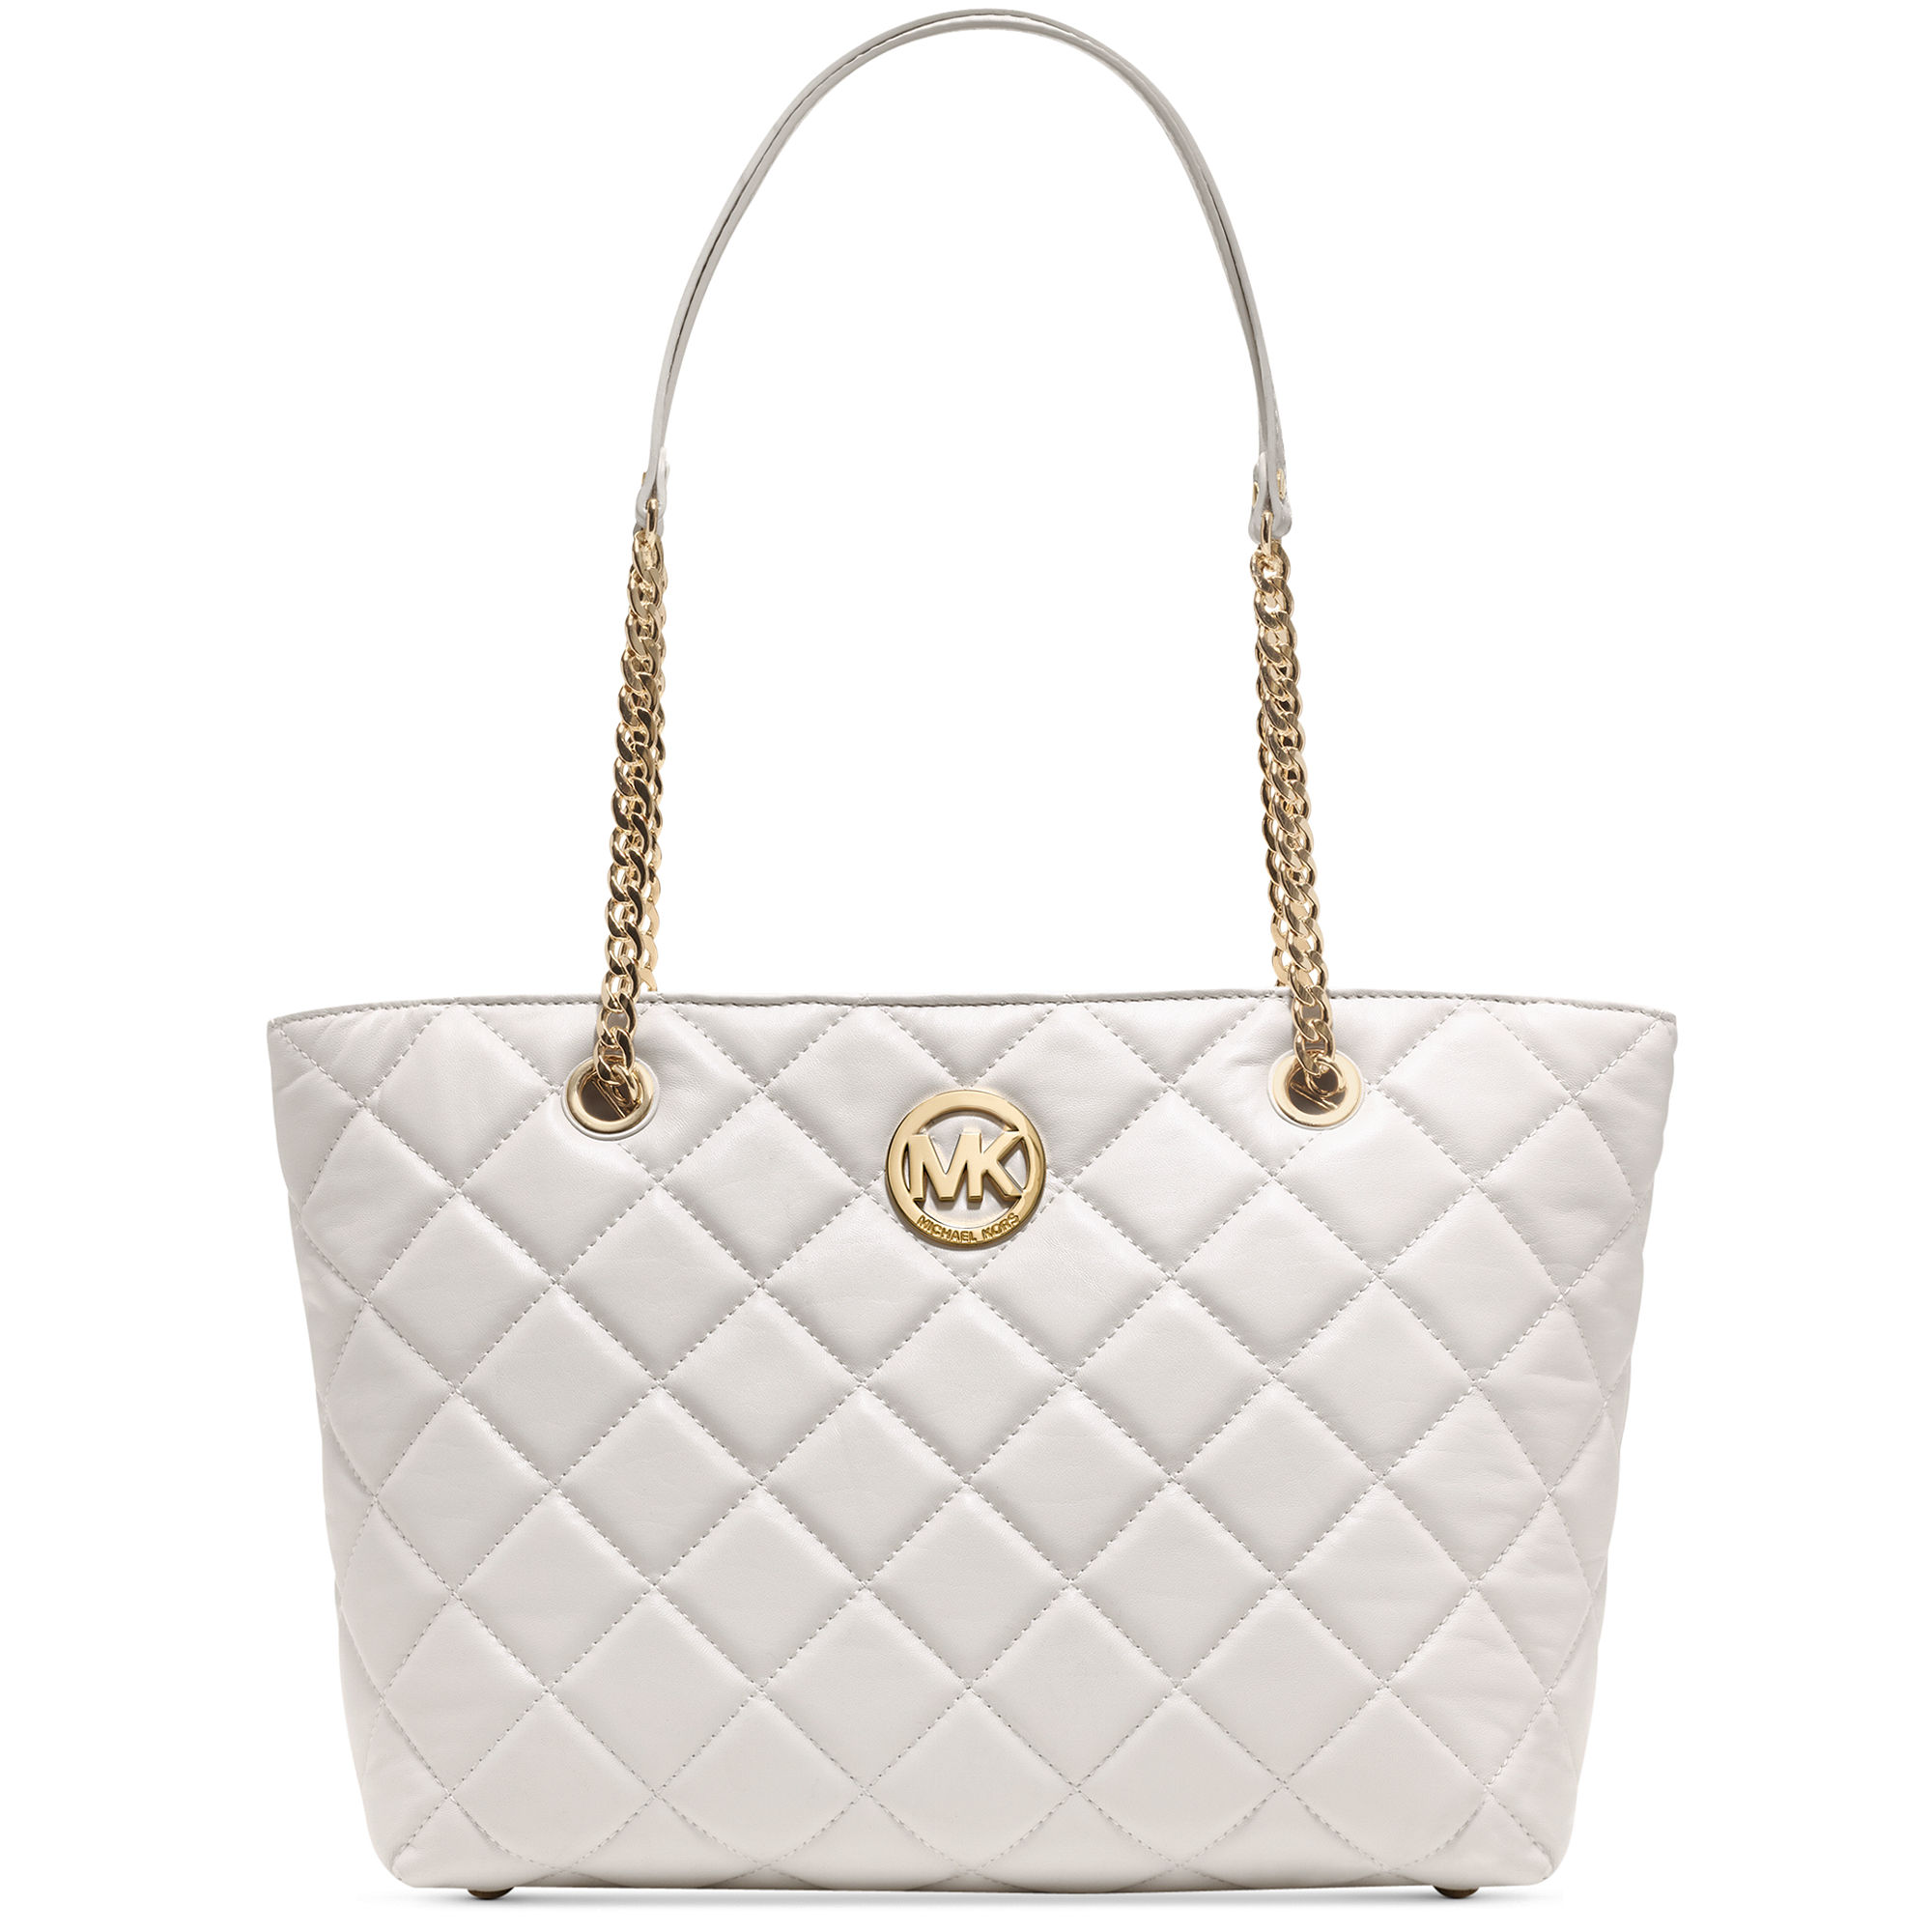 Lyst - Michael kors Fulton Quilted Large East West Tote in White : michael kors fulton quilted tote - Adamdwight.com